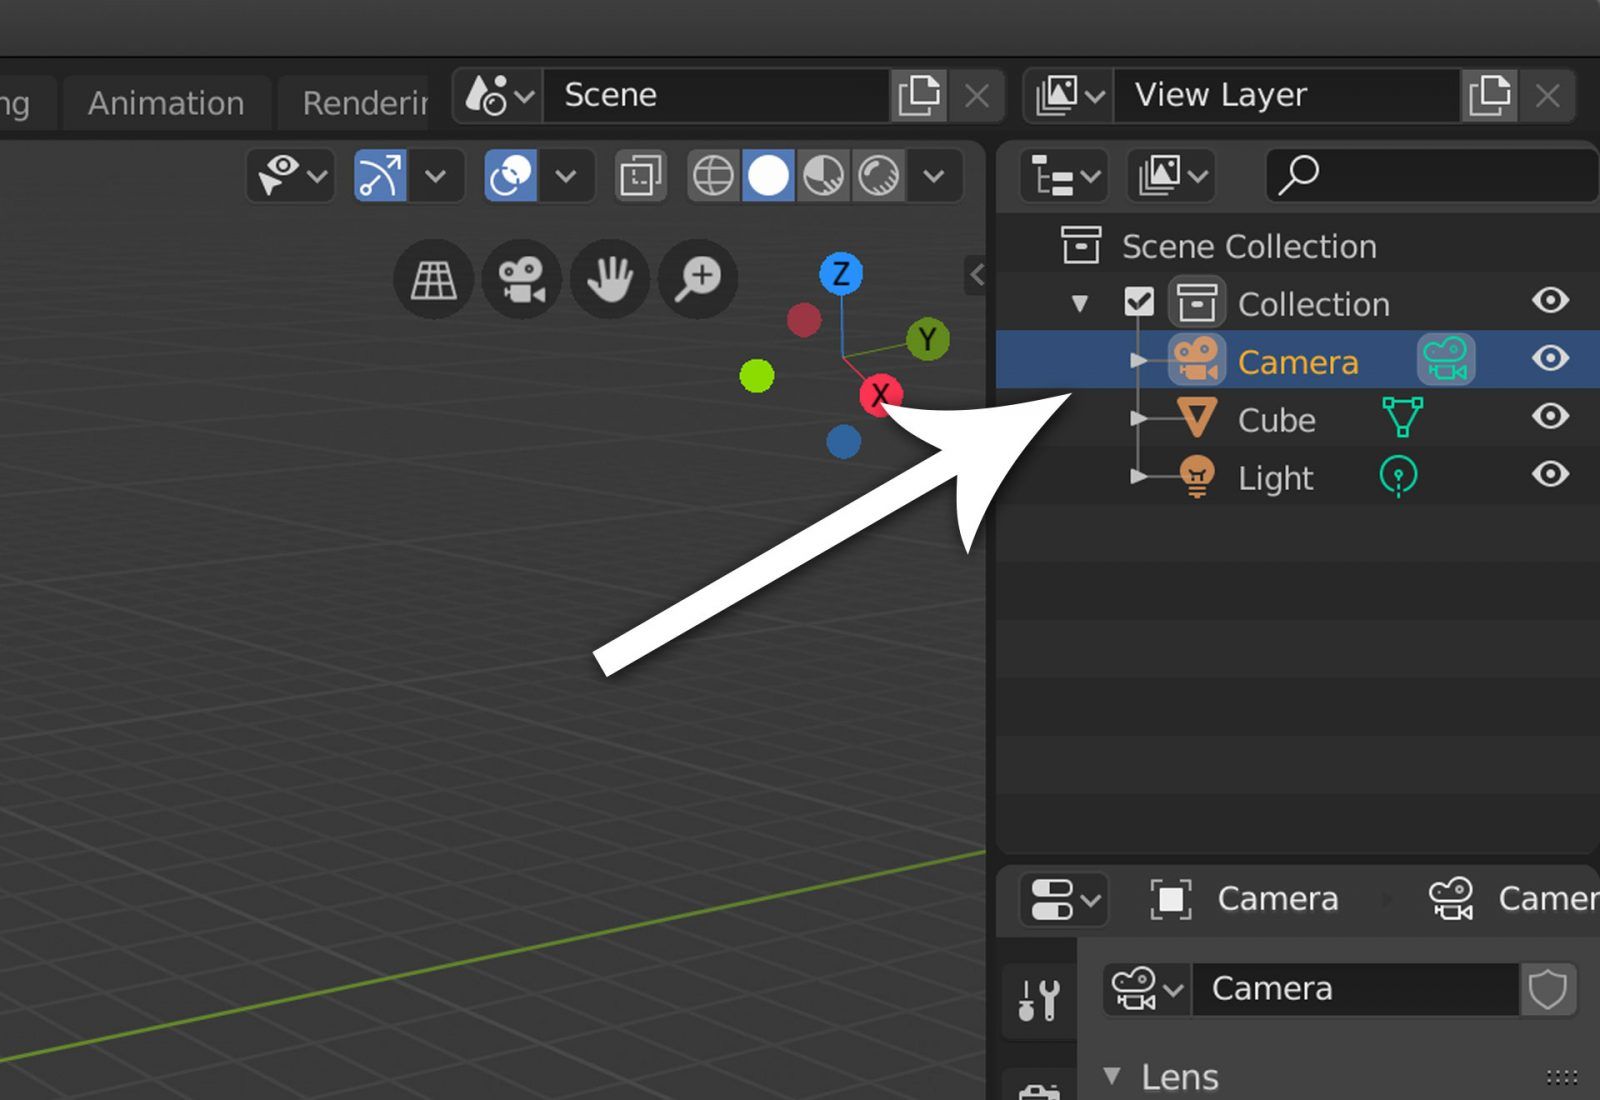 Render a Background Image Using Blender 2.8 - step 1 select camera.